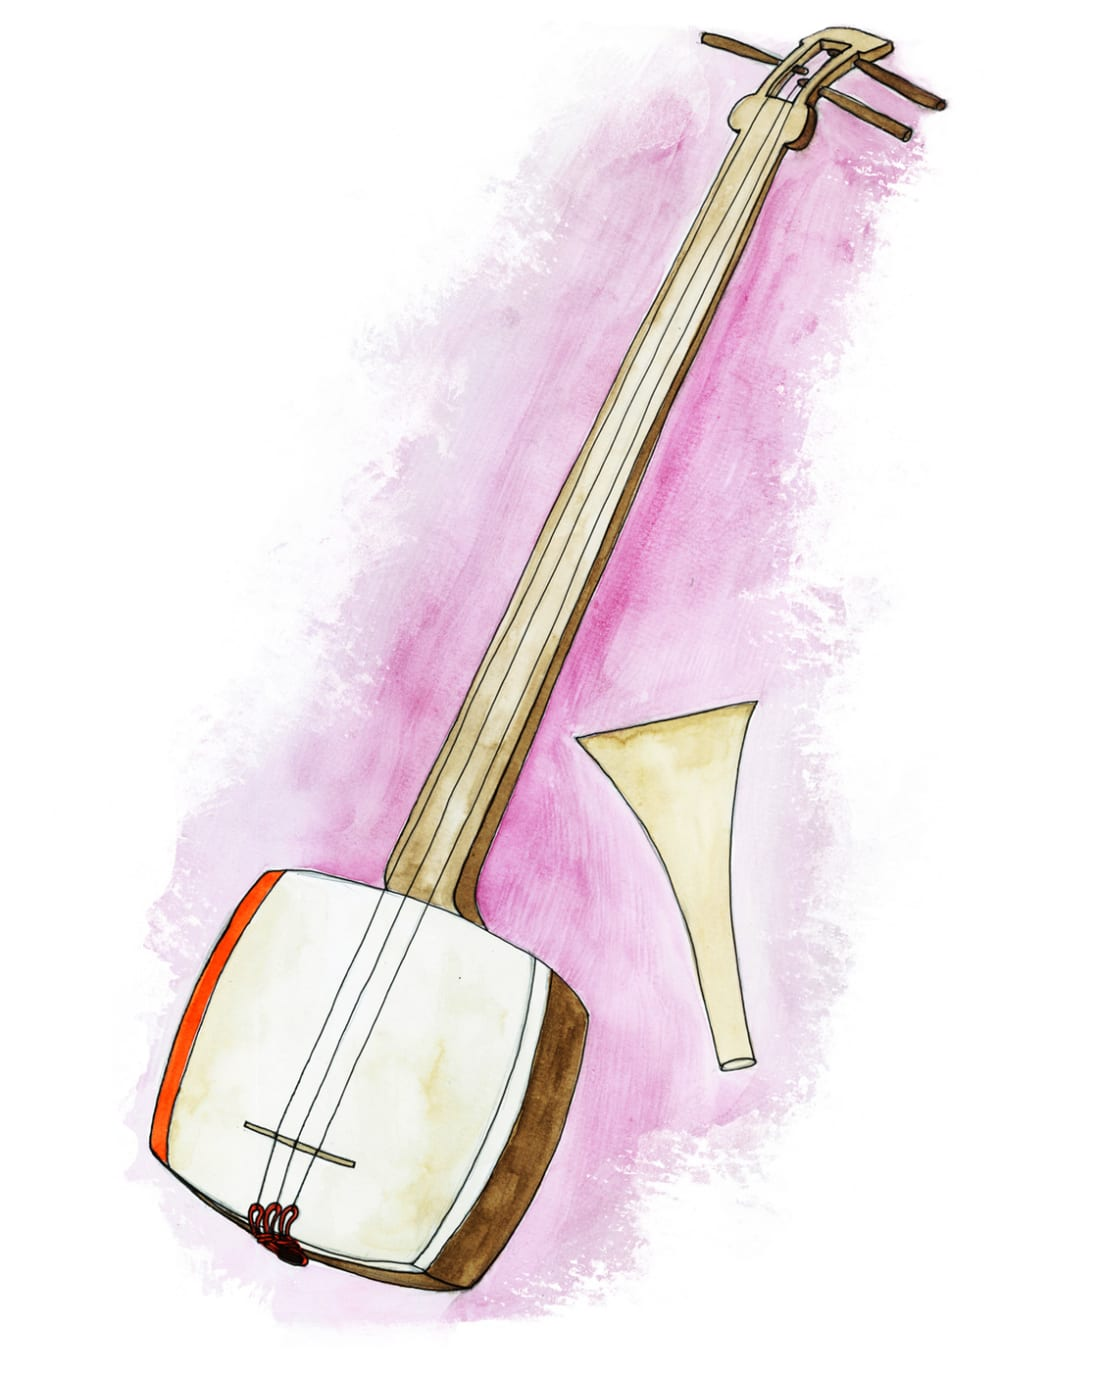 Illustration of Japanese instrument shamisen